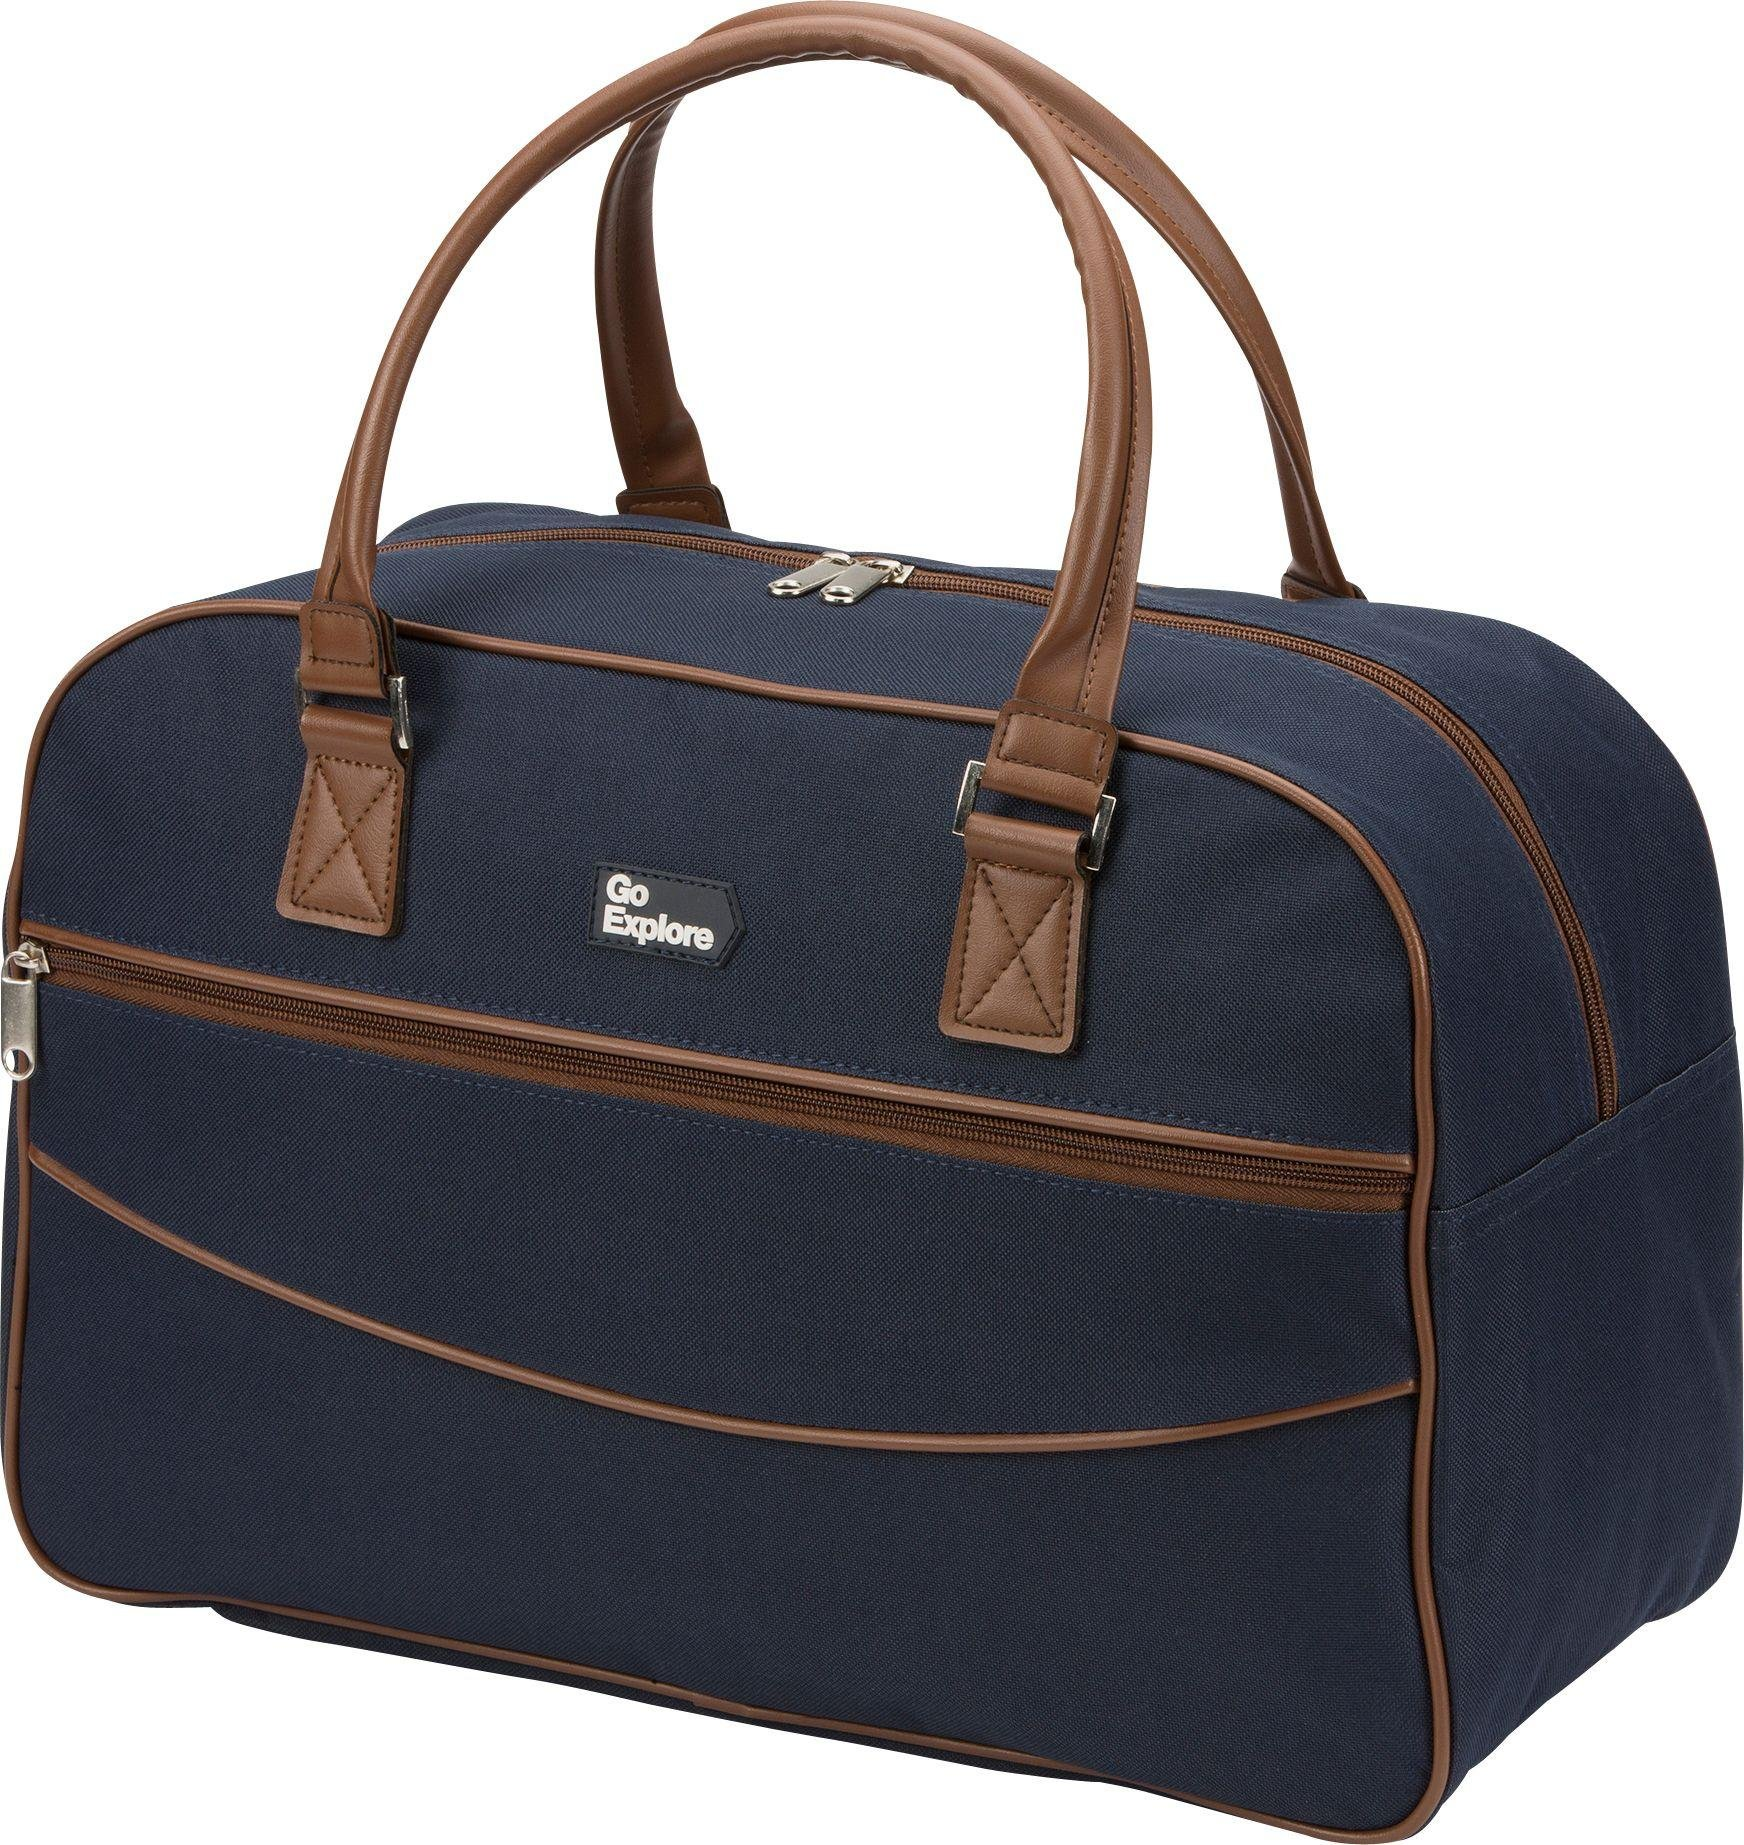 Go Explore - Weekend Holdall - Navy lowest price